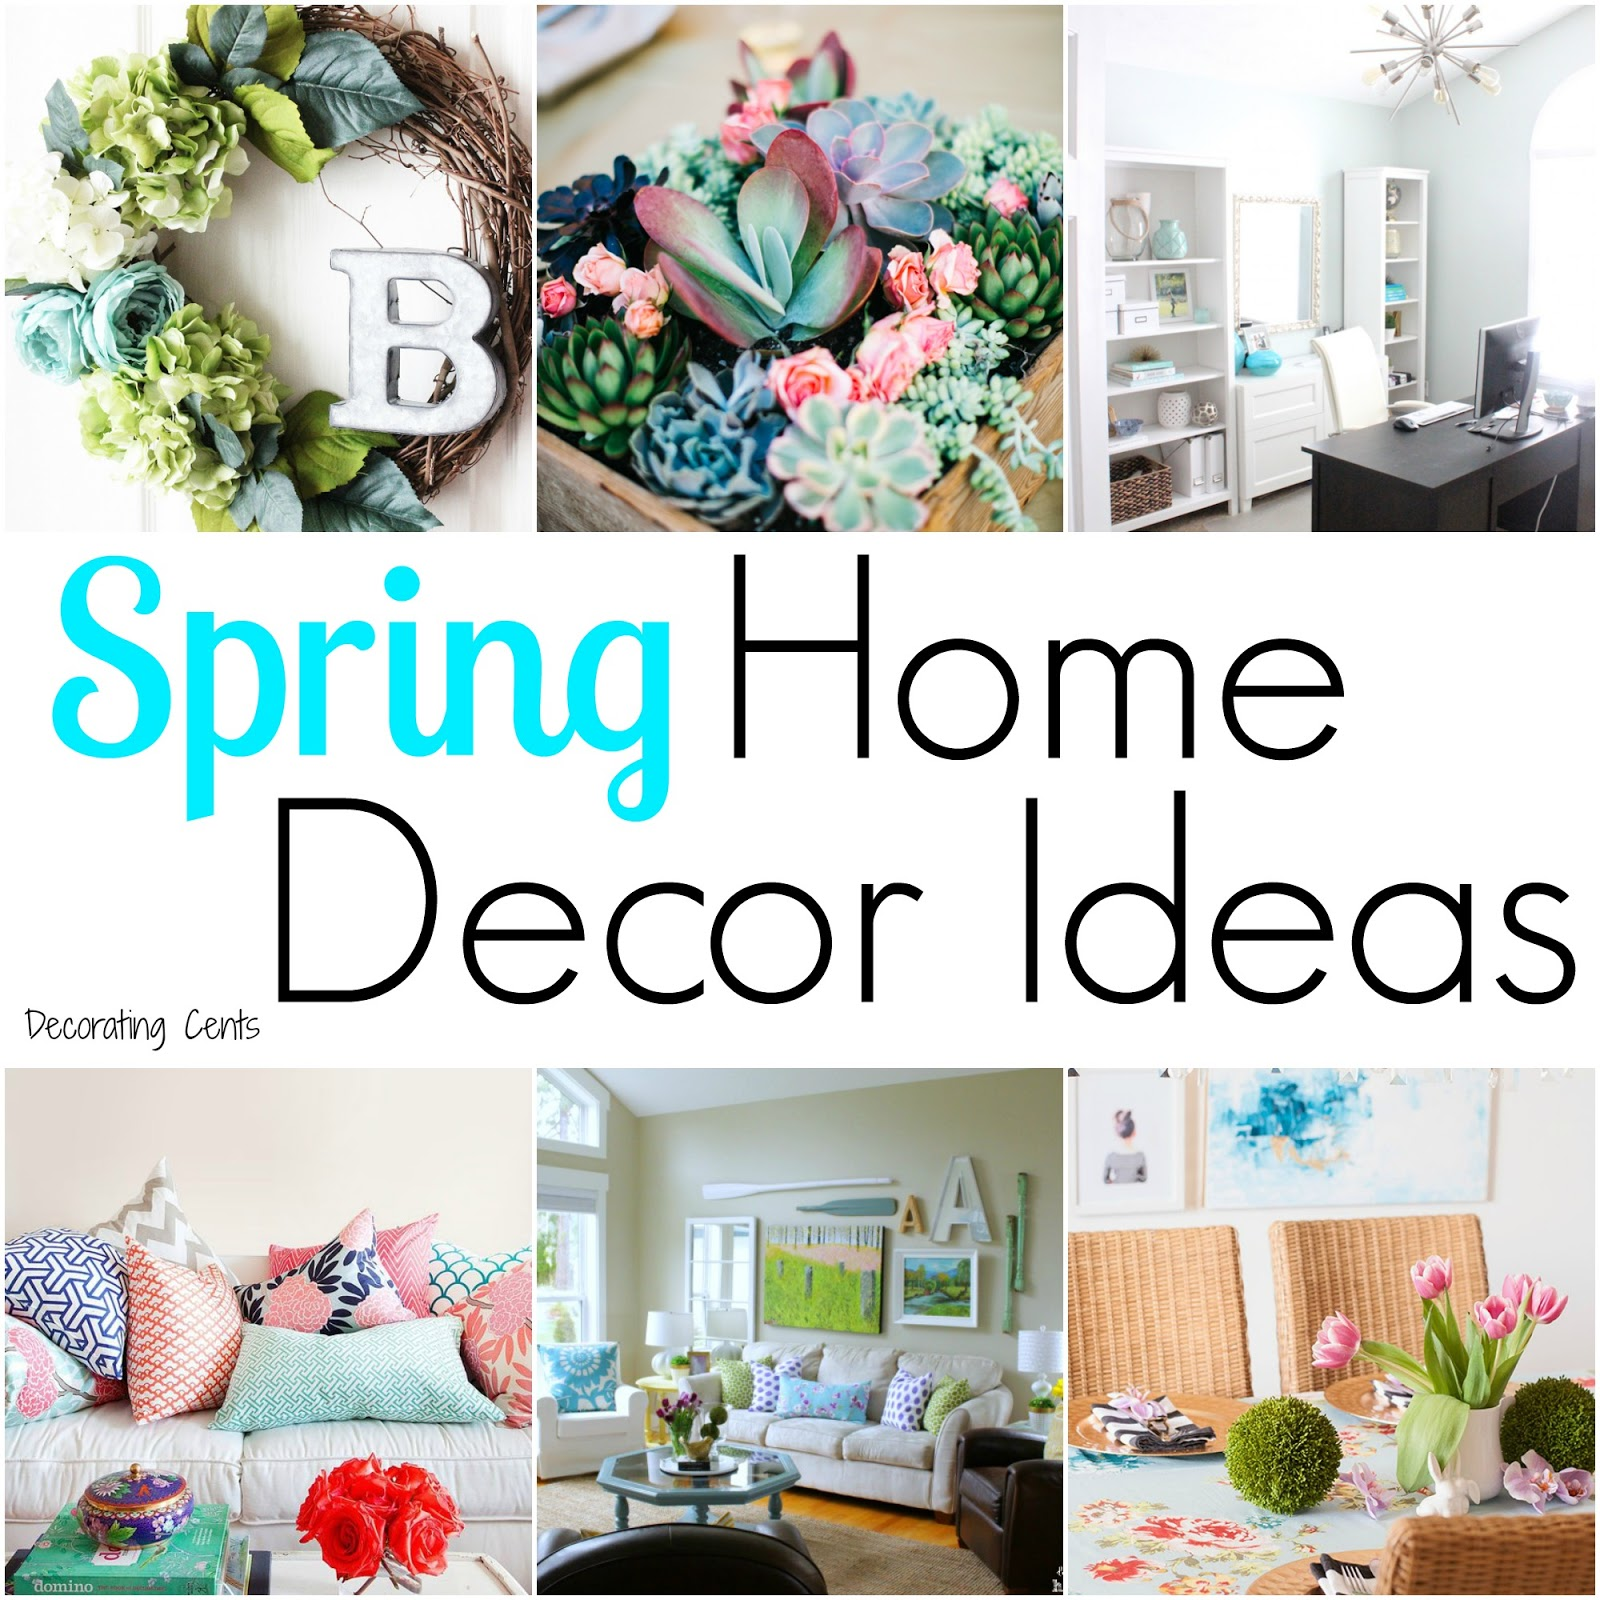 Decorating cents spring home decor ideas for Home design ideas themes